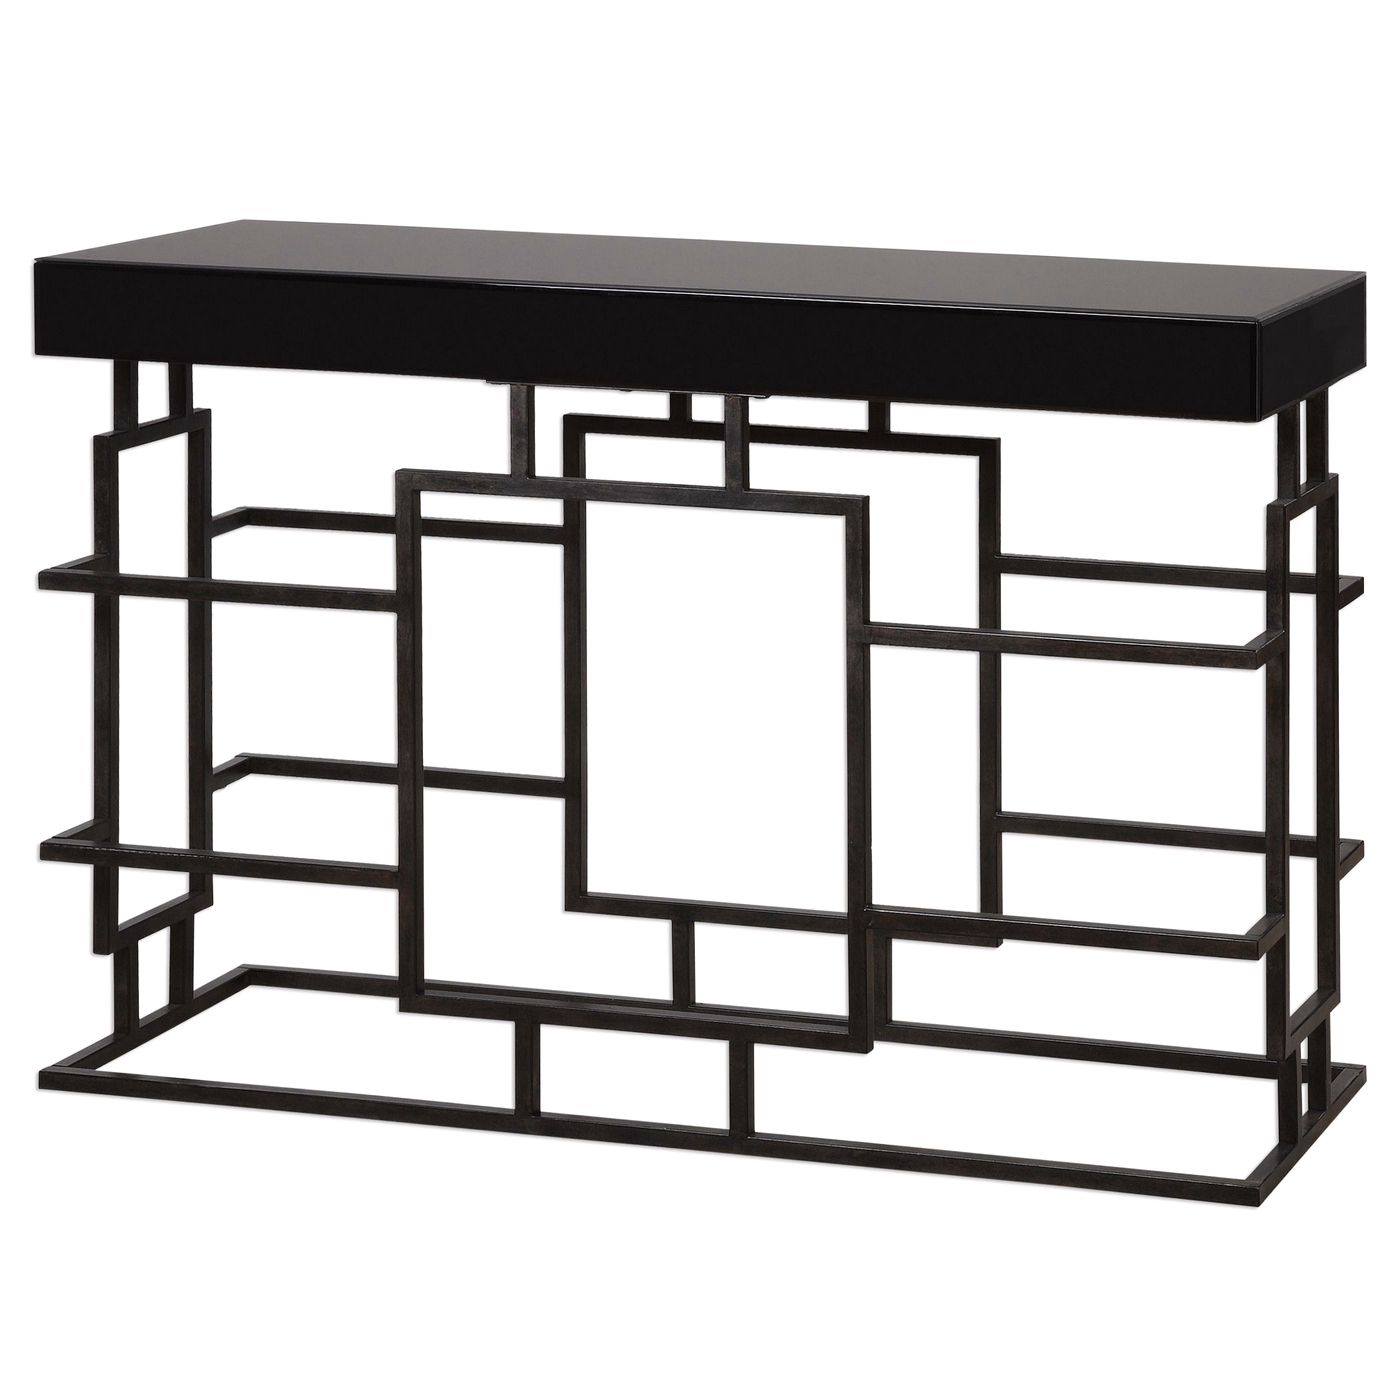 Andy stylish black console table in geometric iron frame